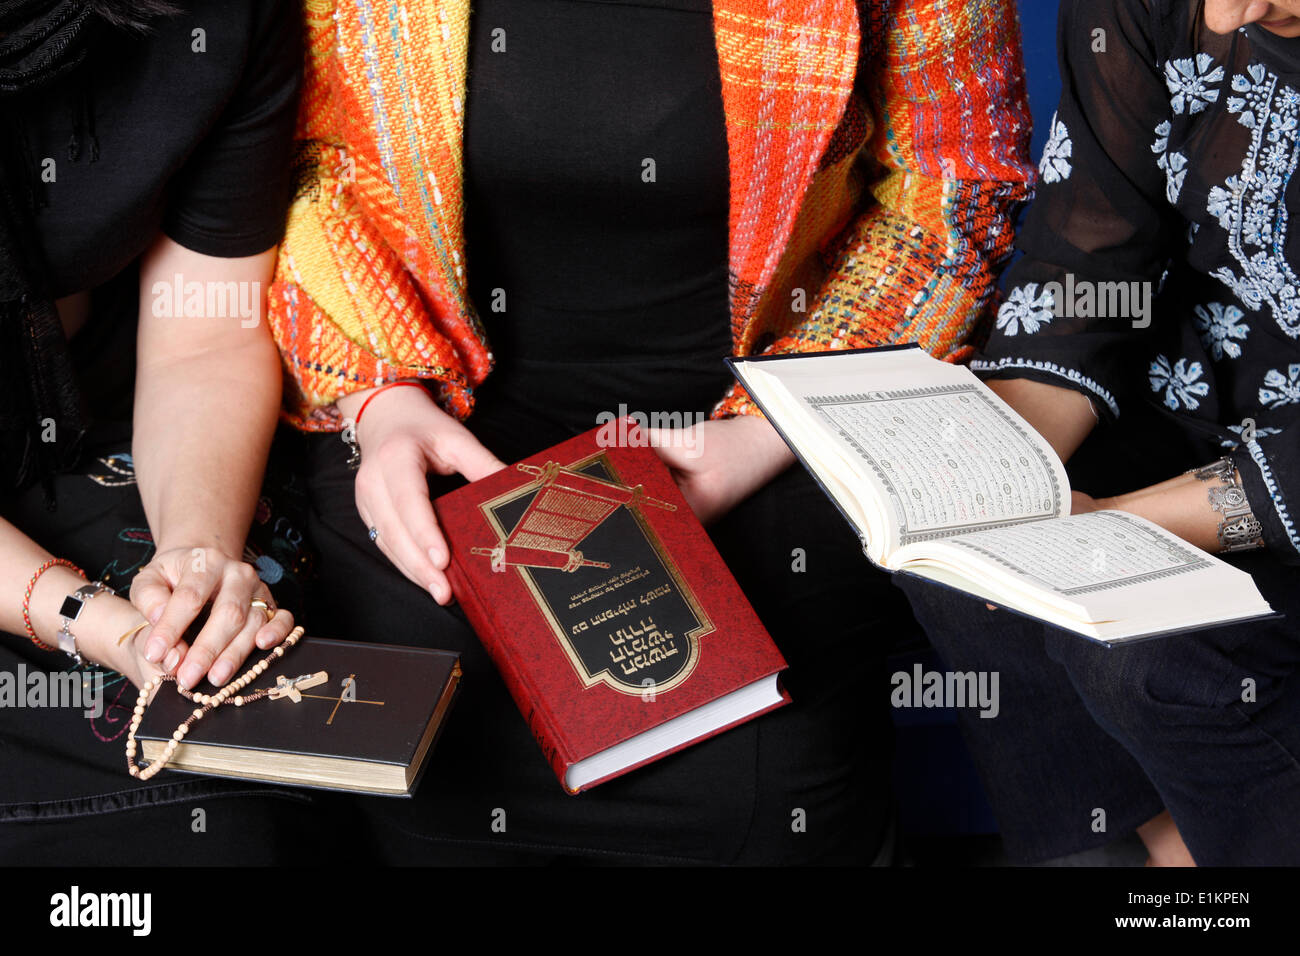 Inter-religious meeting - Stock Image